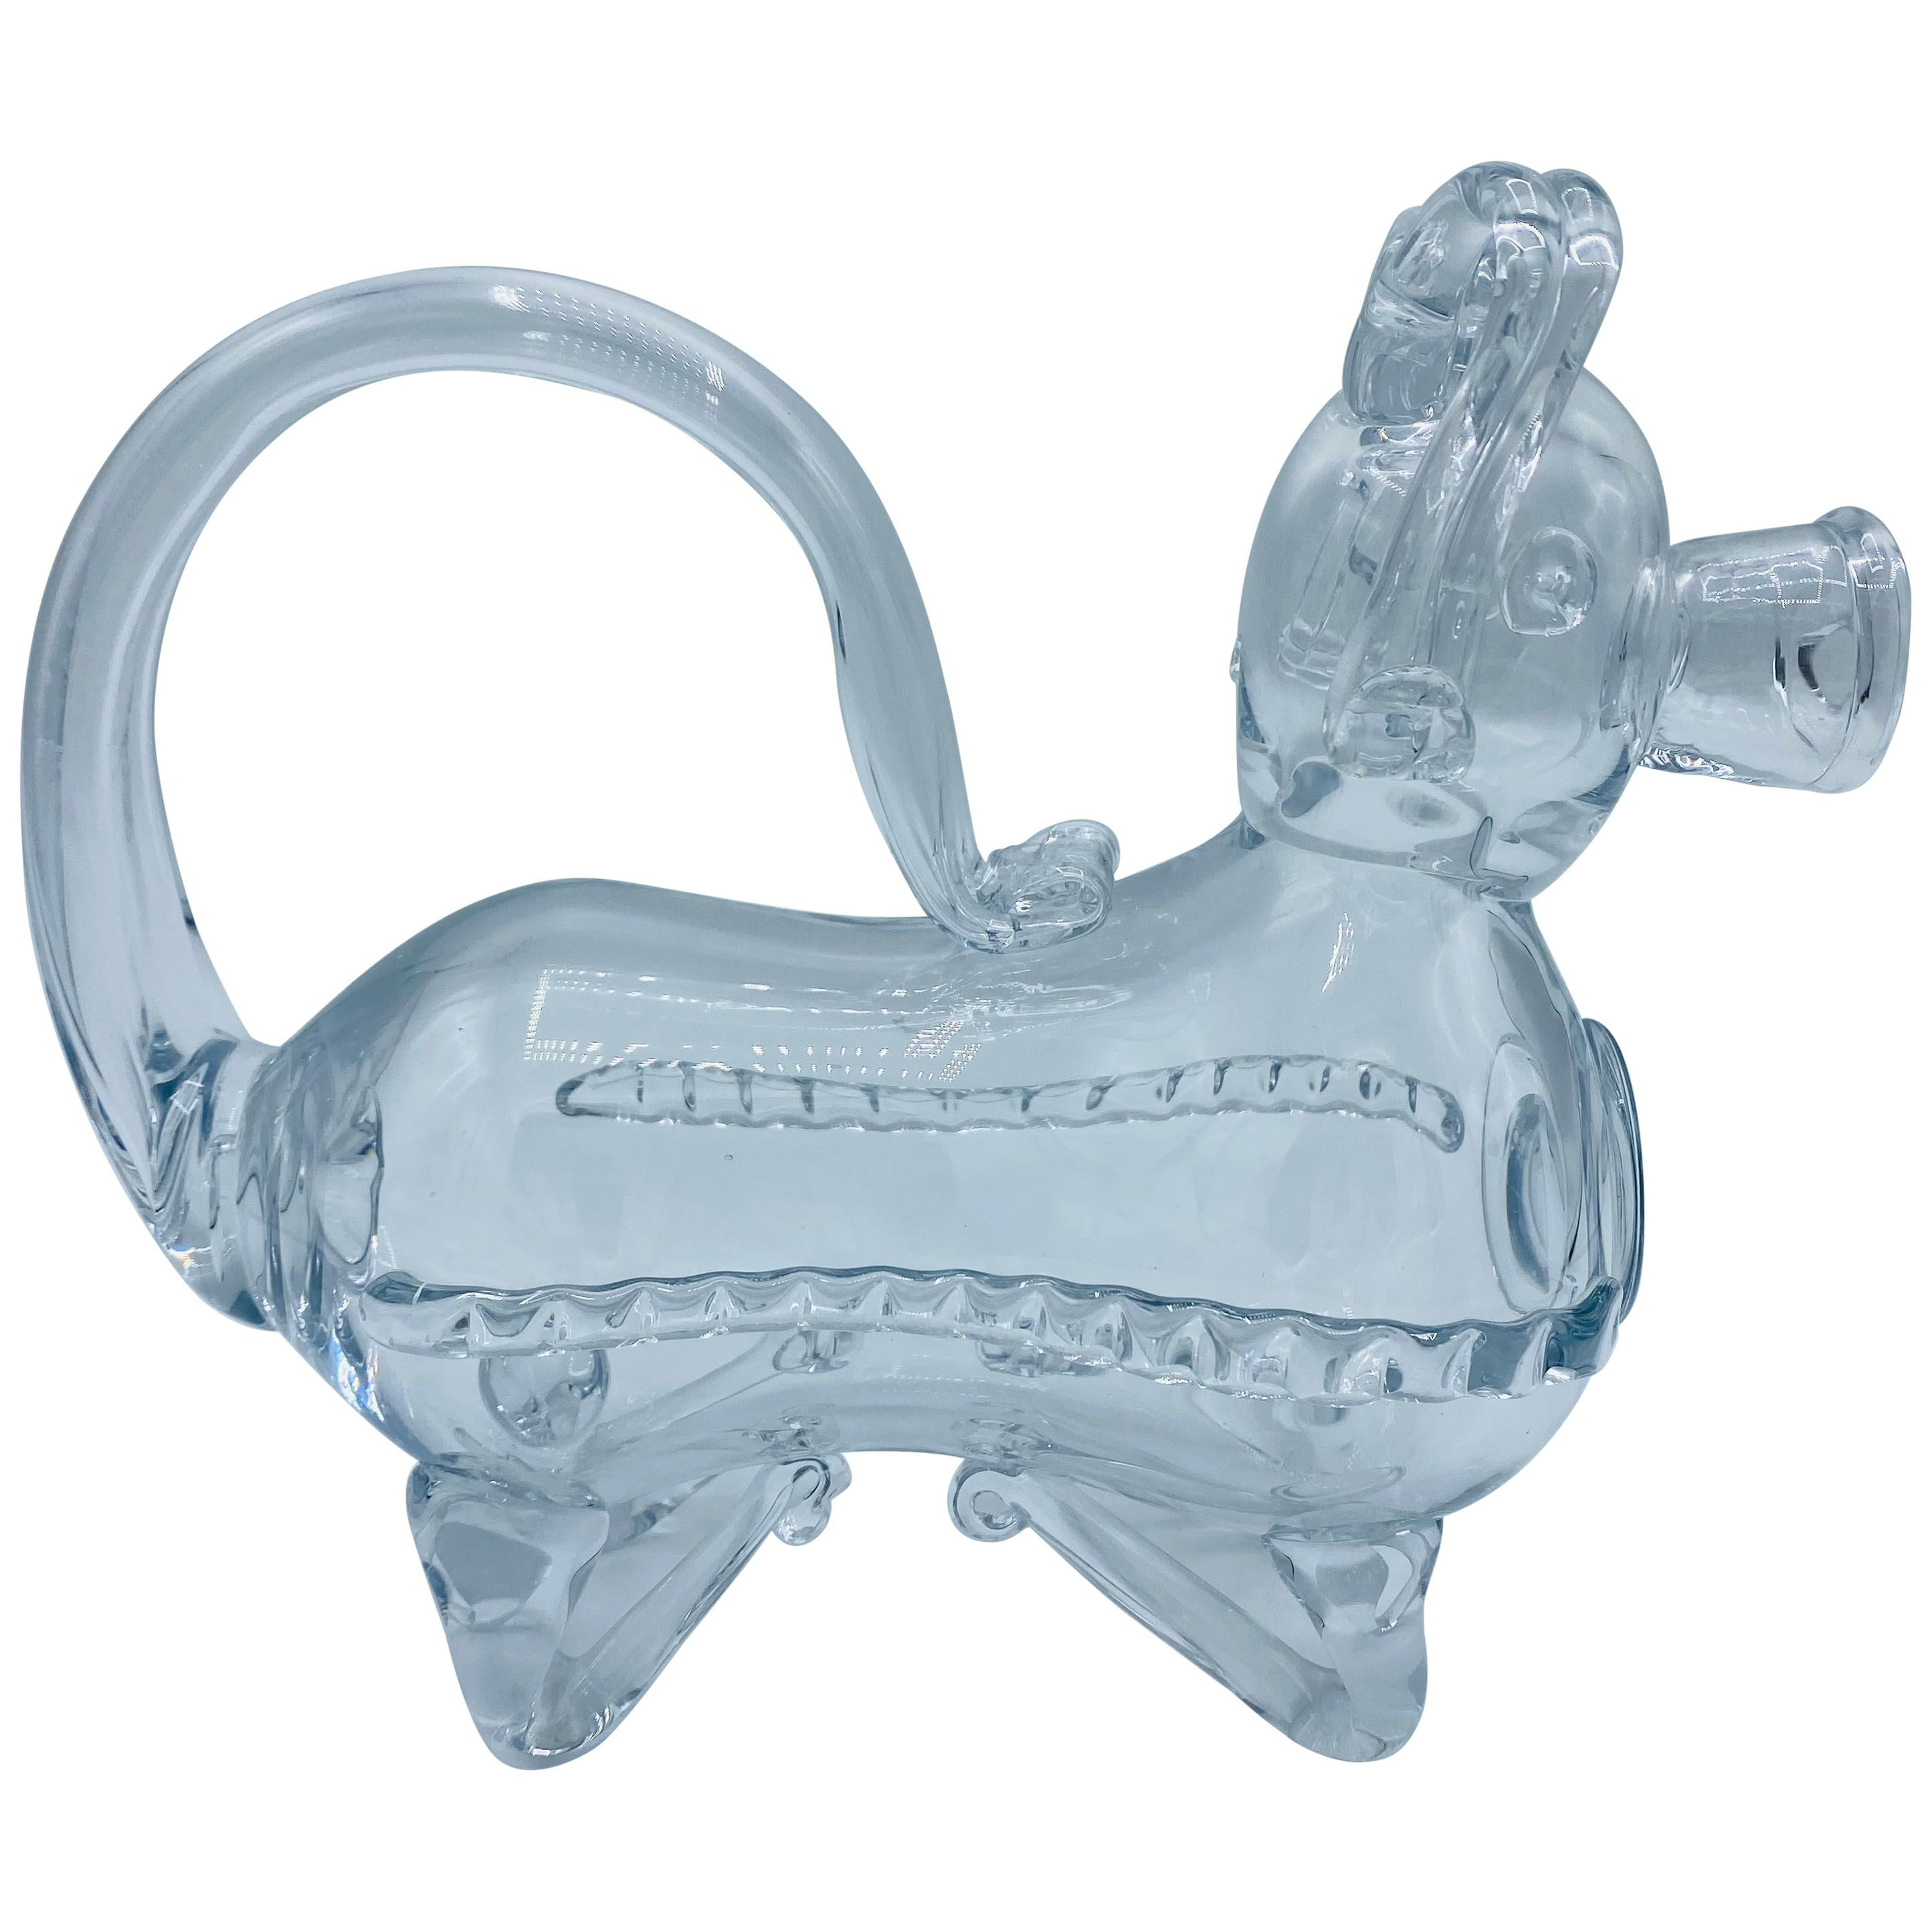 1950s Crystal Pig Wine Decanter